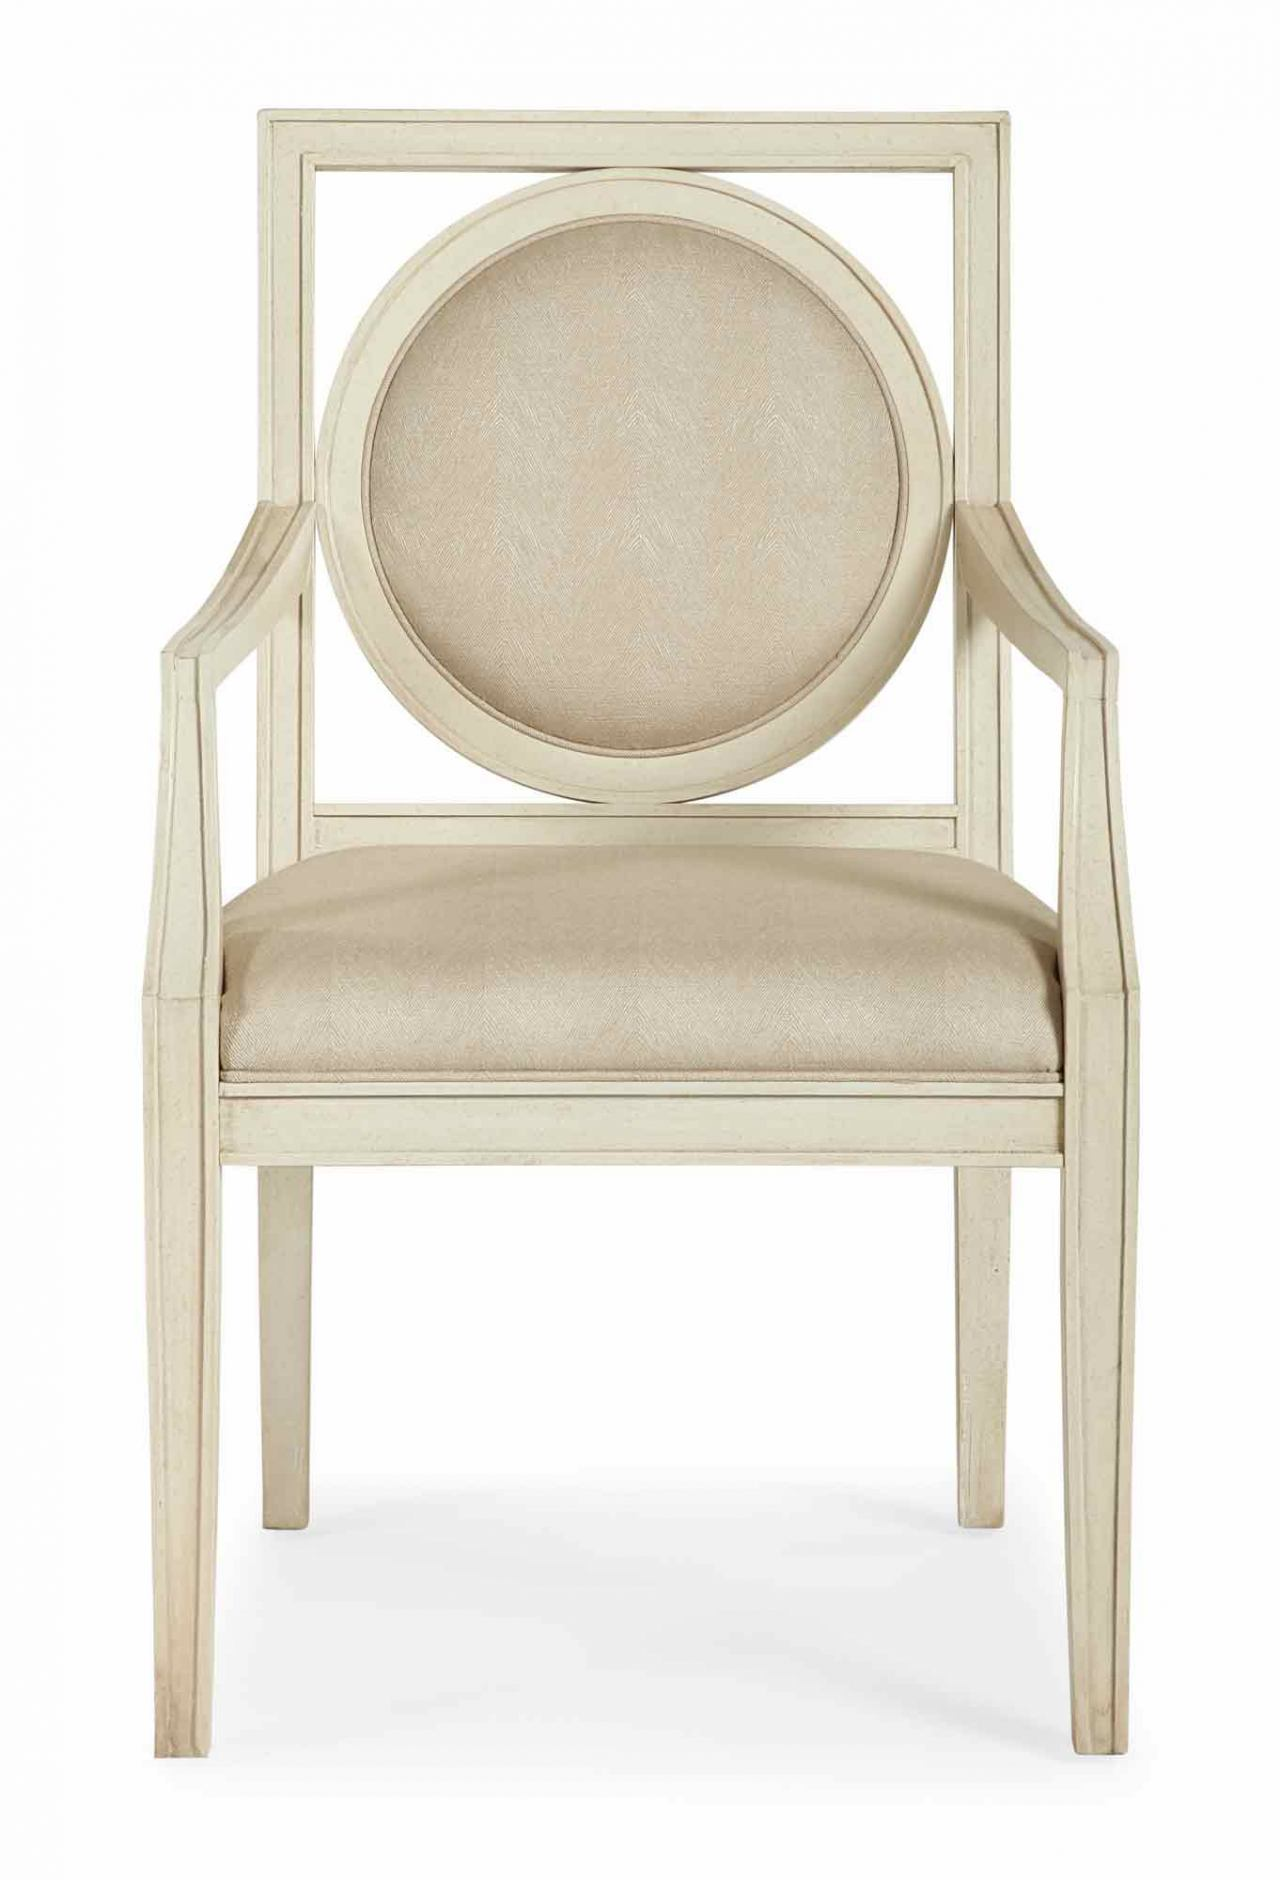 Bernhardt Salon Dining Arm Chair with Circular Wood-Framed Back in Alabaster (Set of 2) 341-562